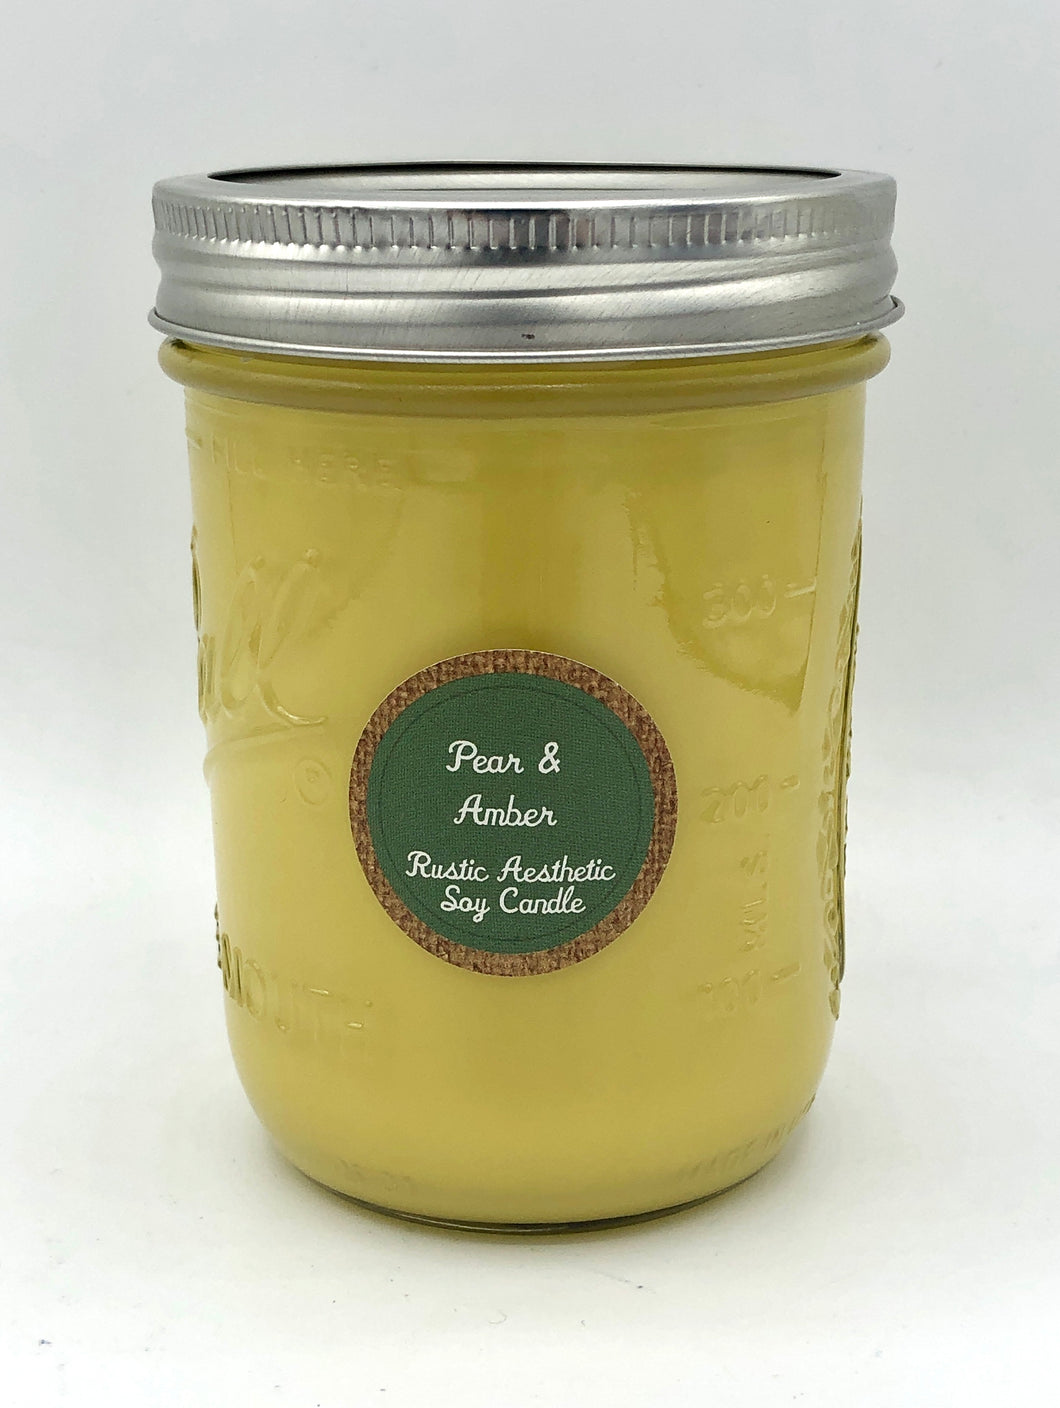 Pear & Amber Soy Candle in an Iconic Mason Jar